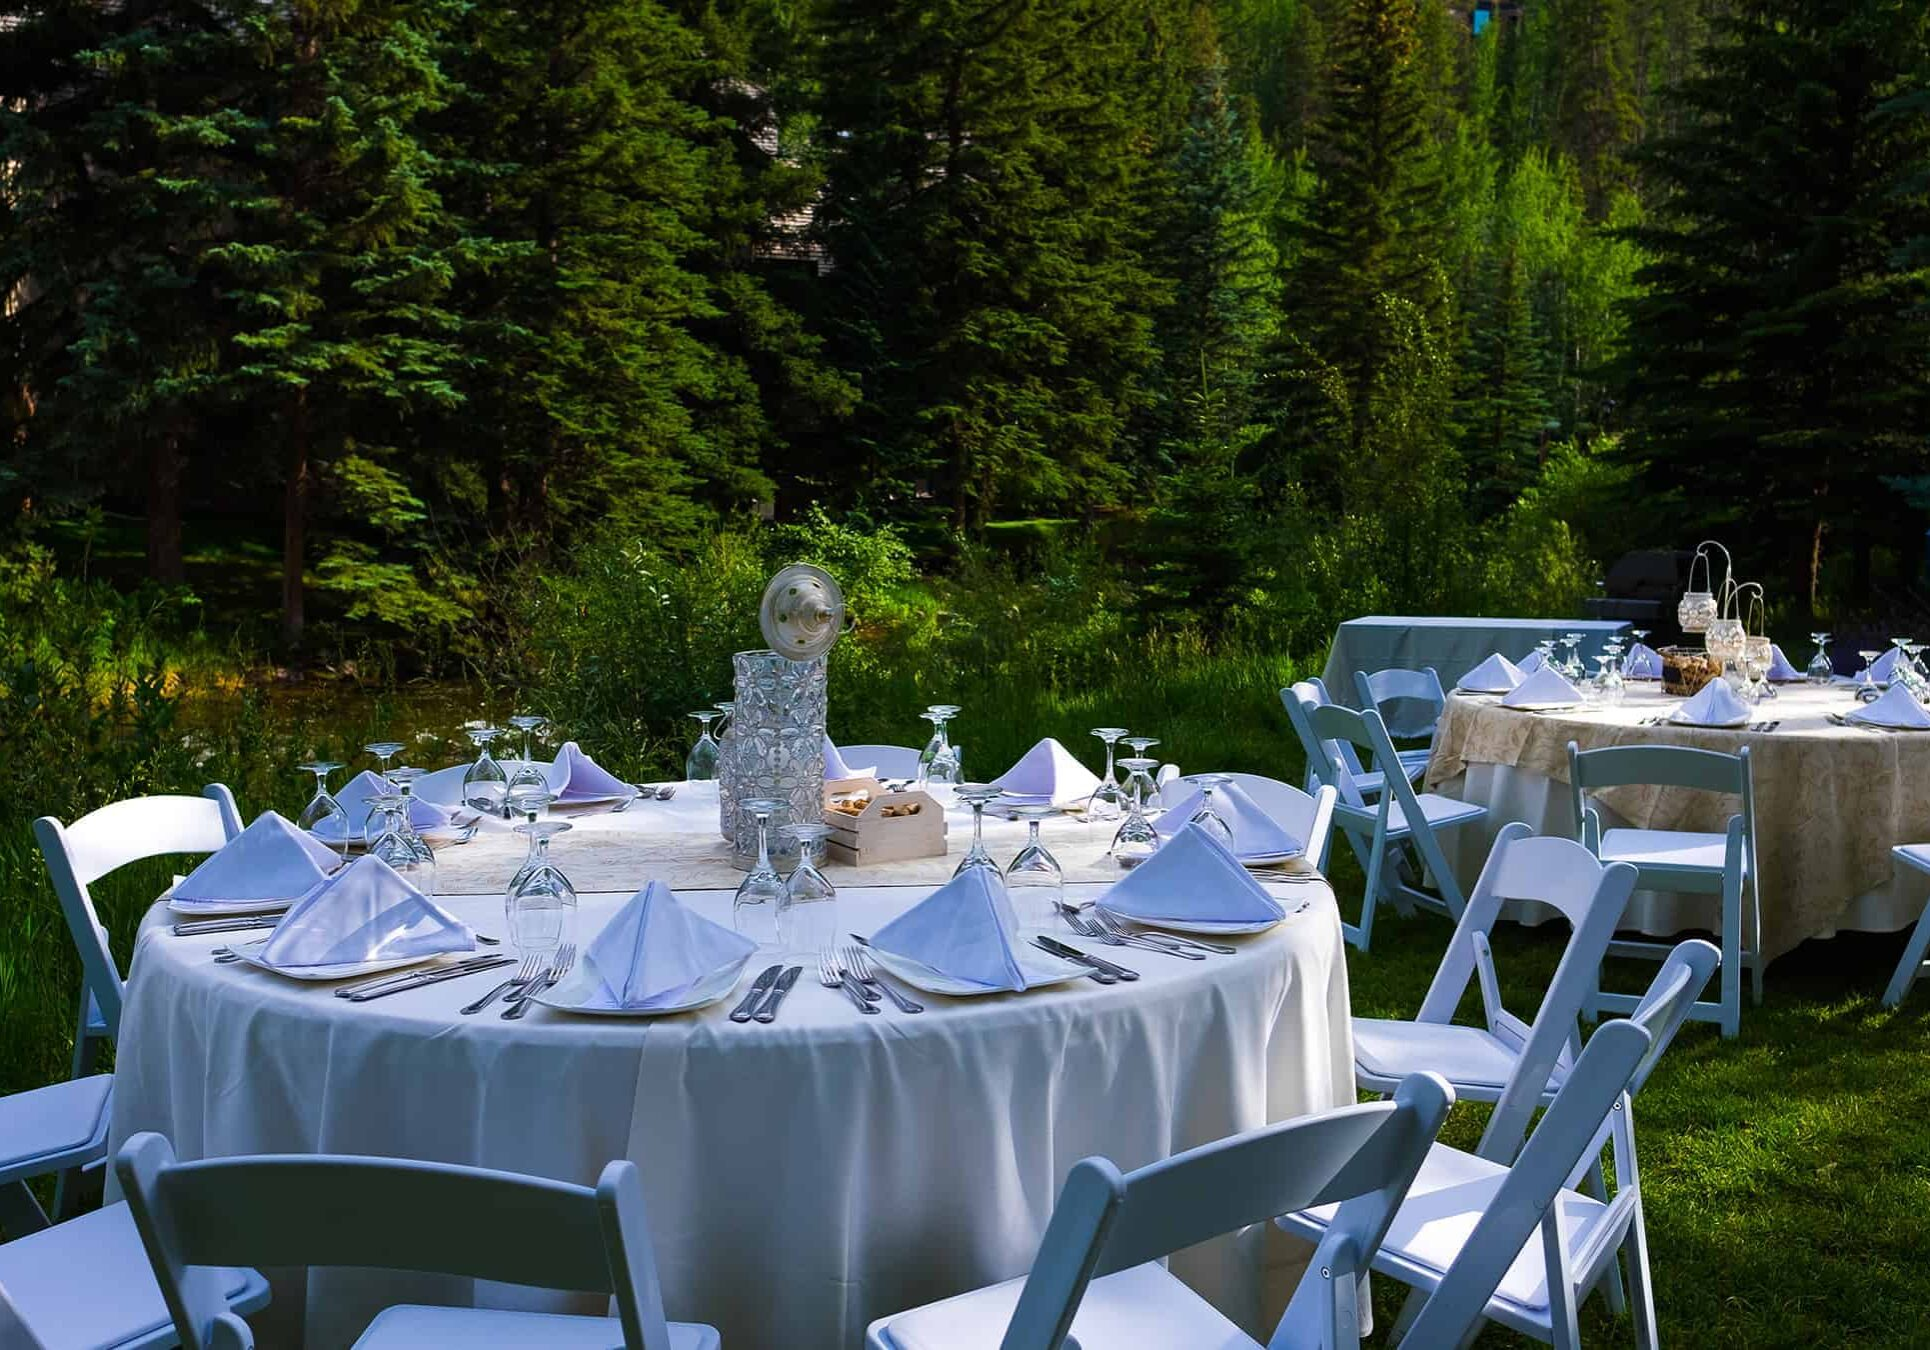 Reception tables outdoors, on grass, with placesettings